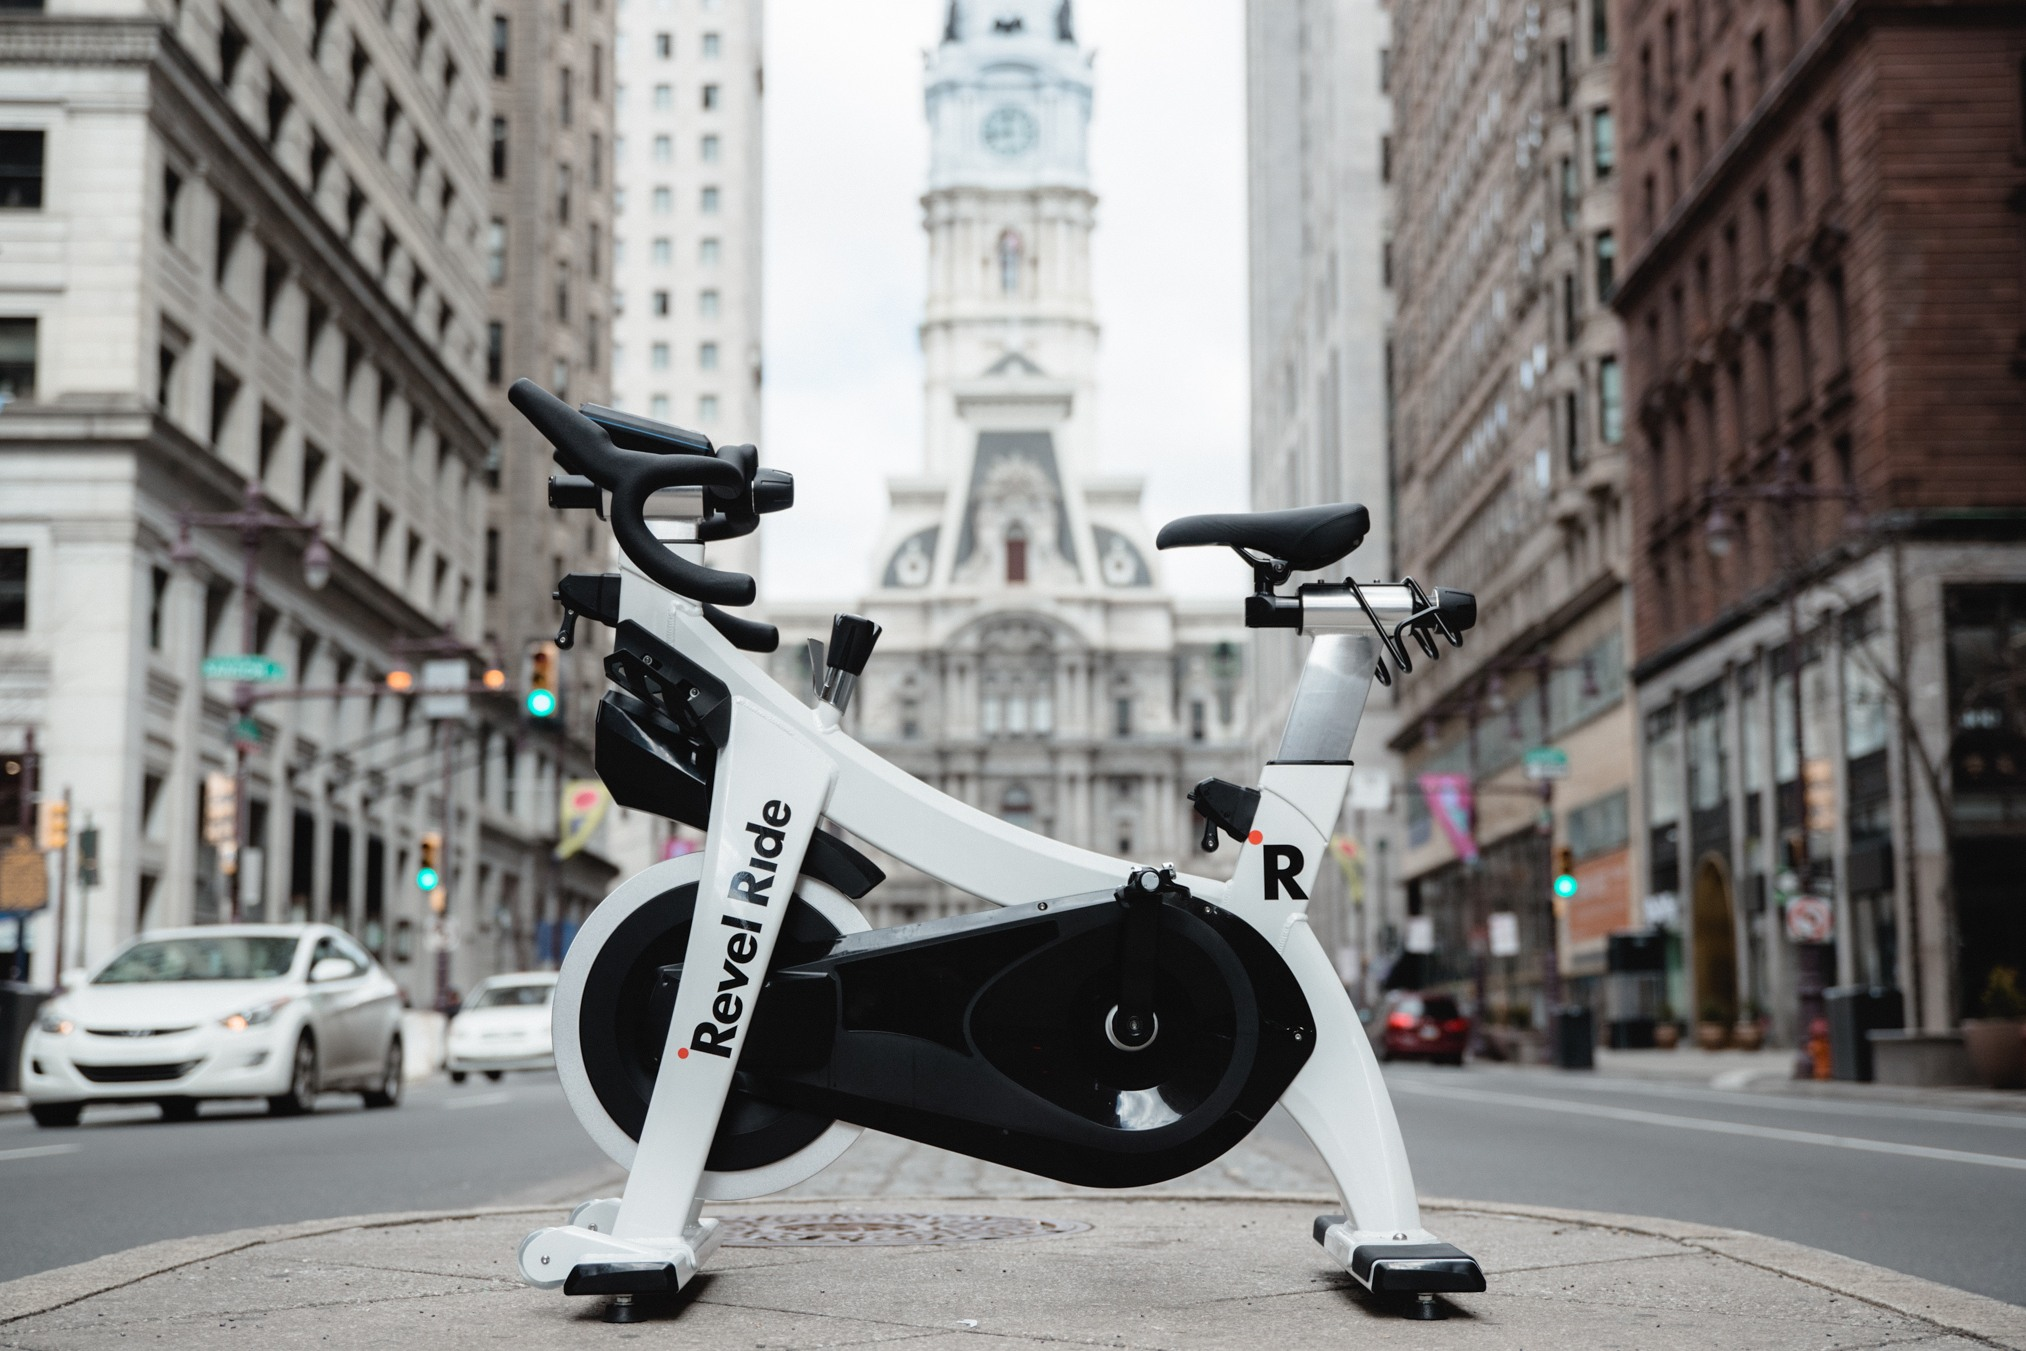 A Revel Ride bike in front of City Hall